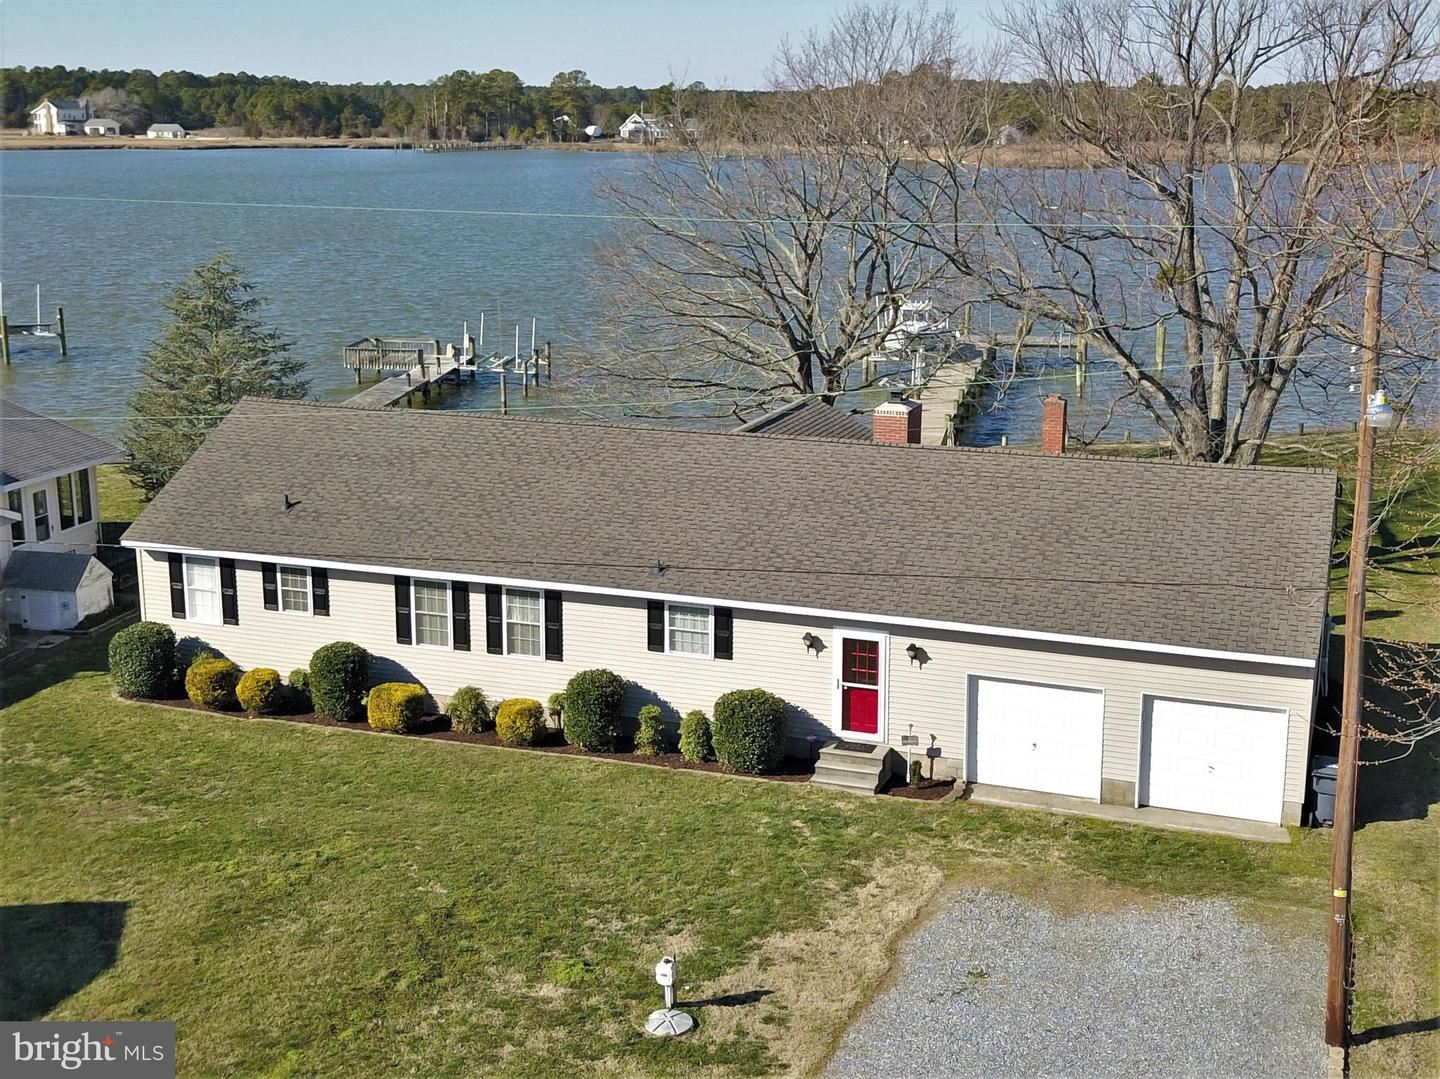 1604 DEEP POINT RD, Woolford, MD 21677 - #: MDDO124996